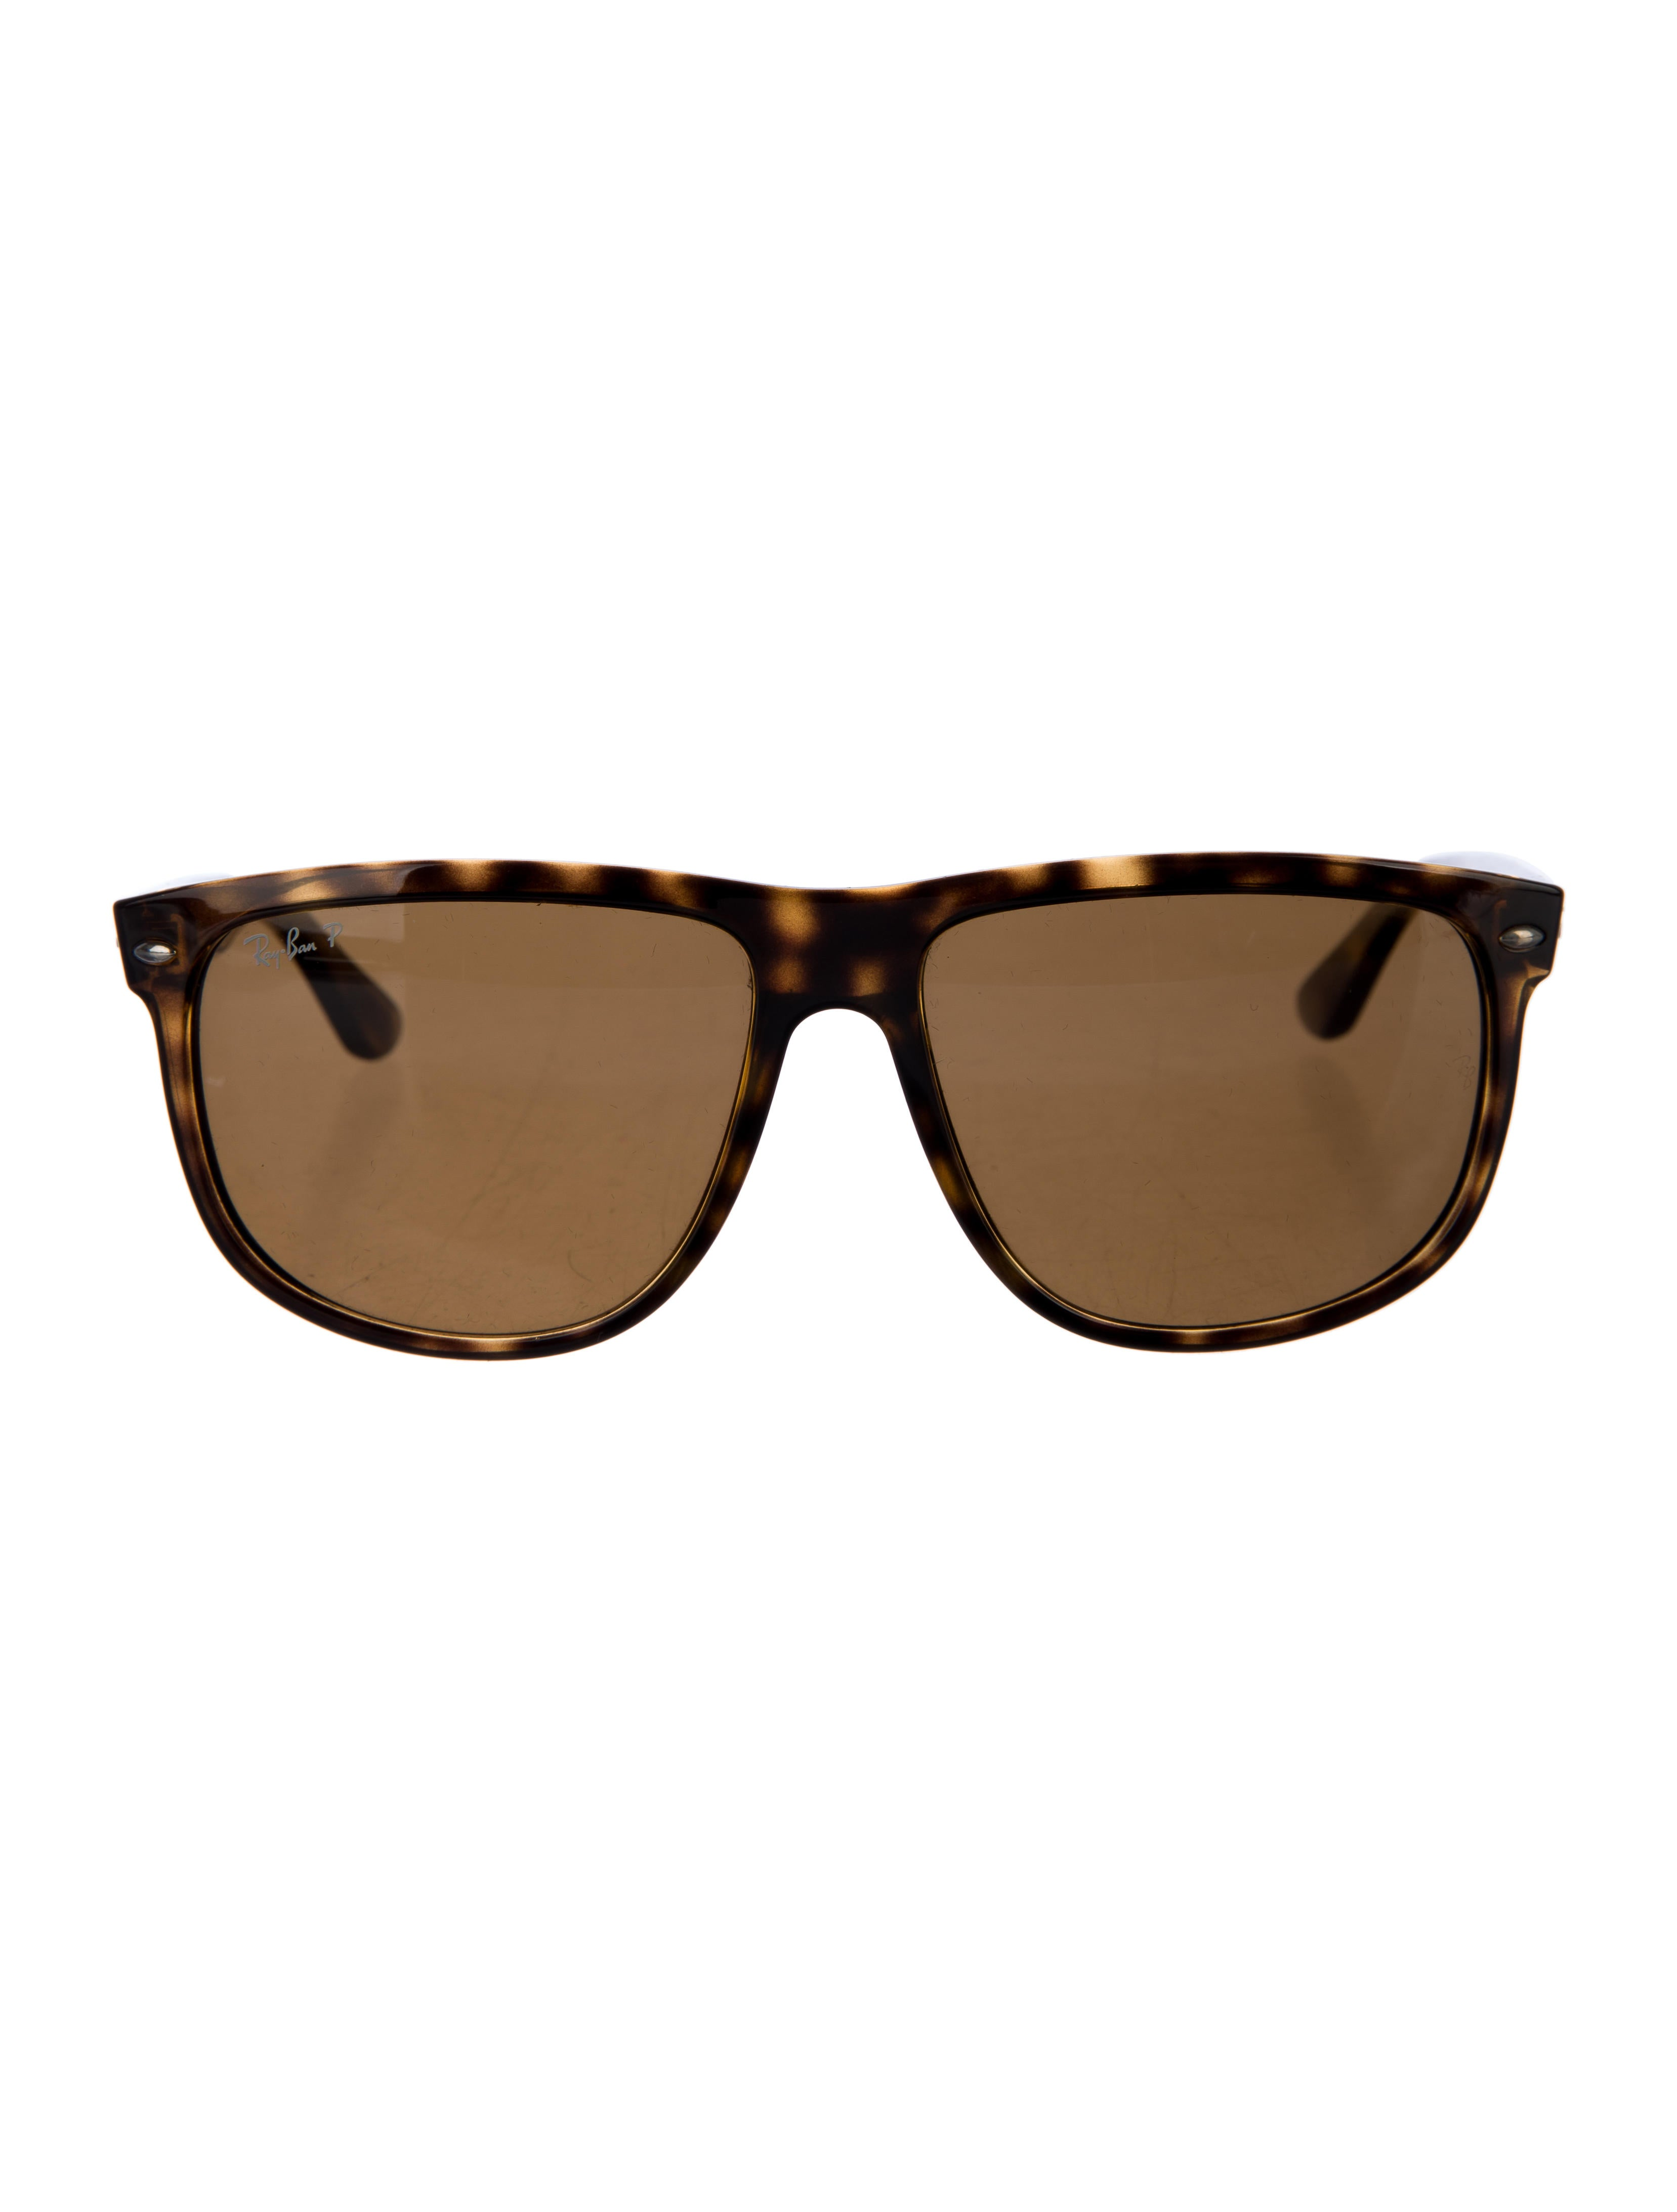 5315d6a094 Sunglasses Ray Ban Italy Design Glasses Wearers « Heritage Malta